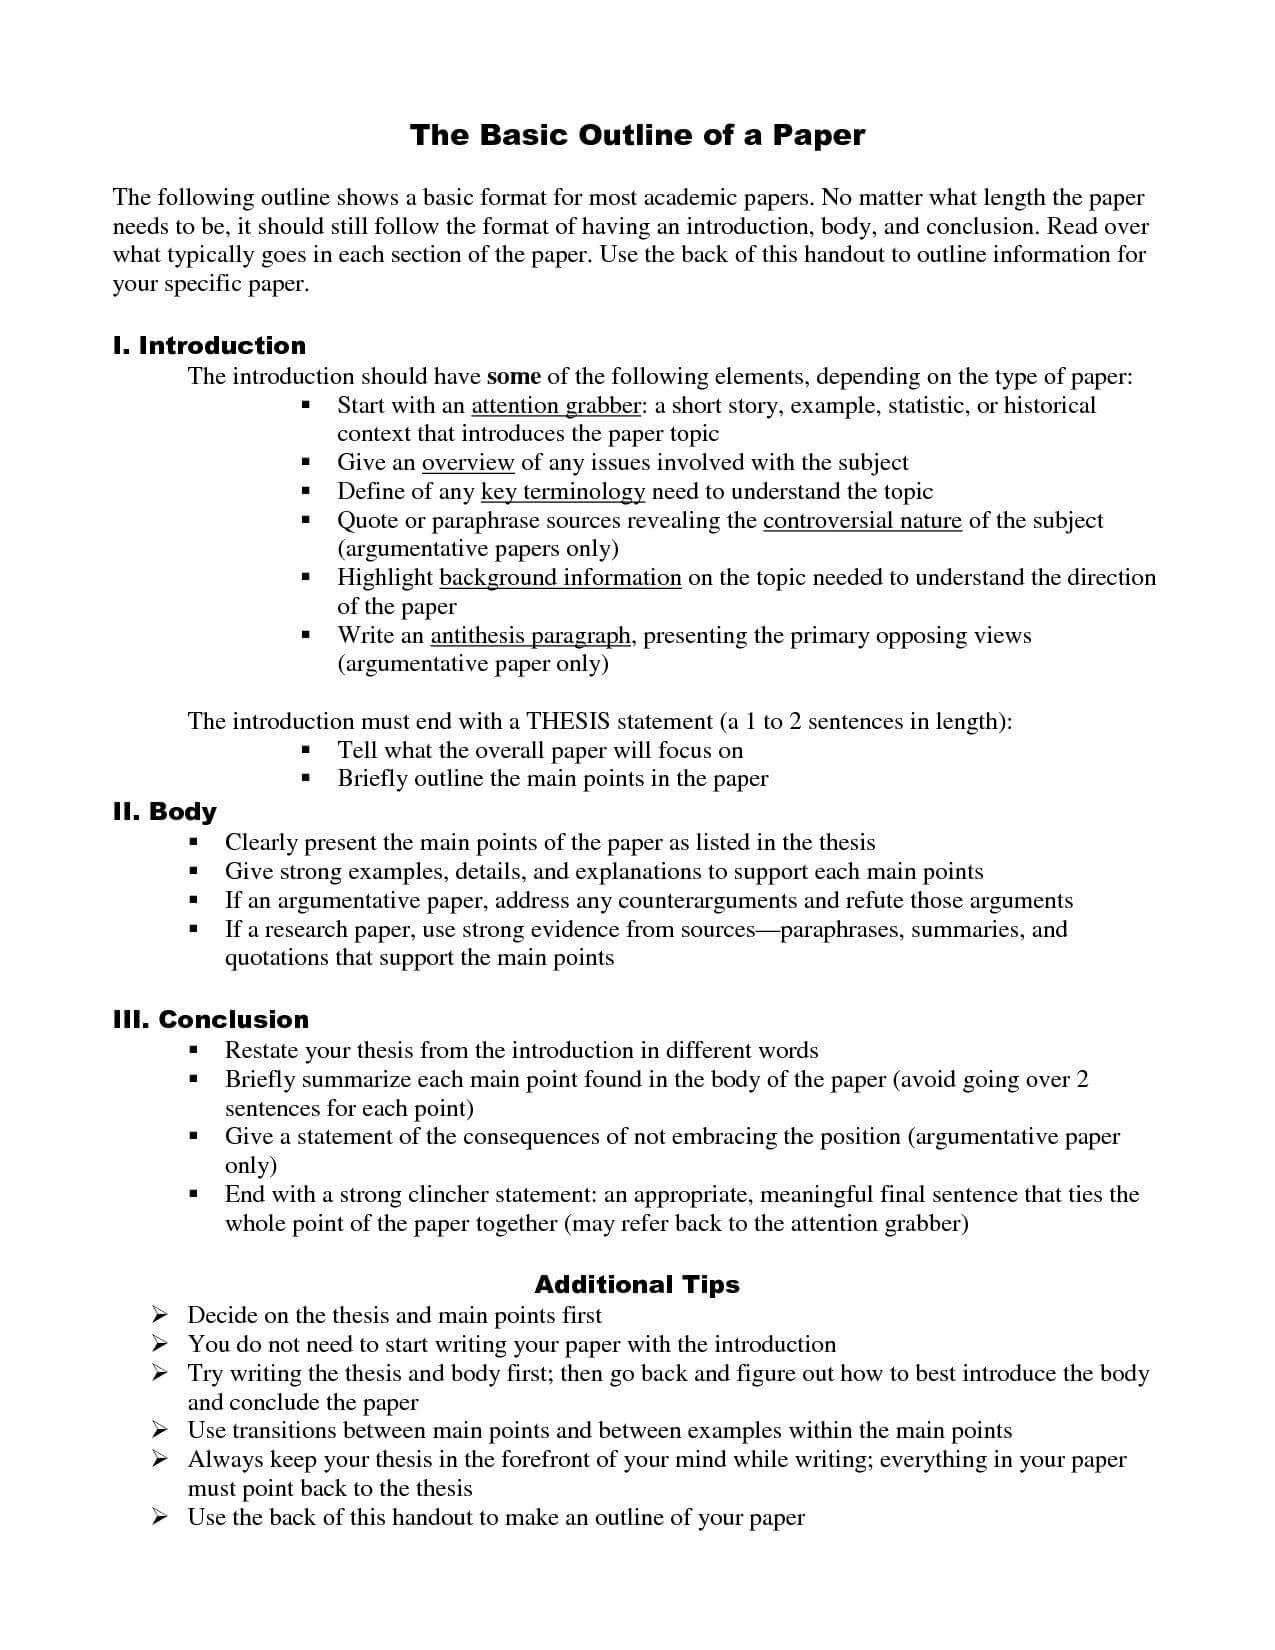 Introduction Of A Research Paper Sample Apa August 21 - DNAEX.NET Within Apa Research Paper Template Word 2010